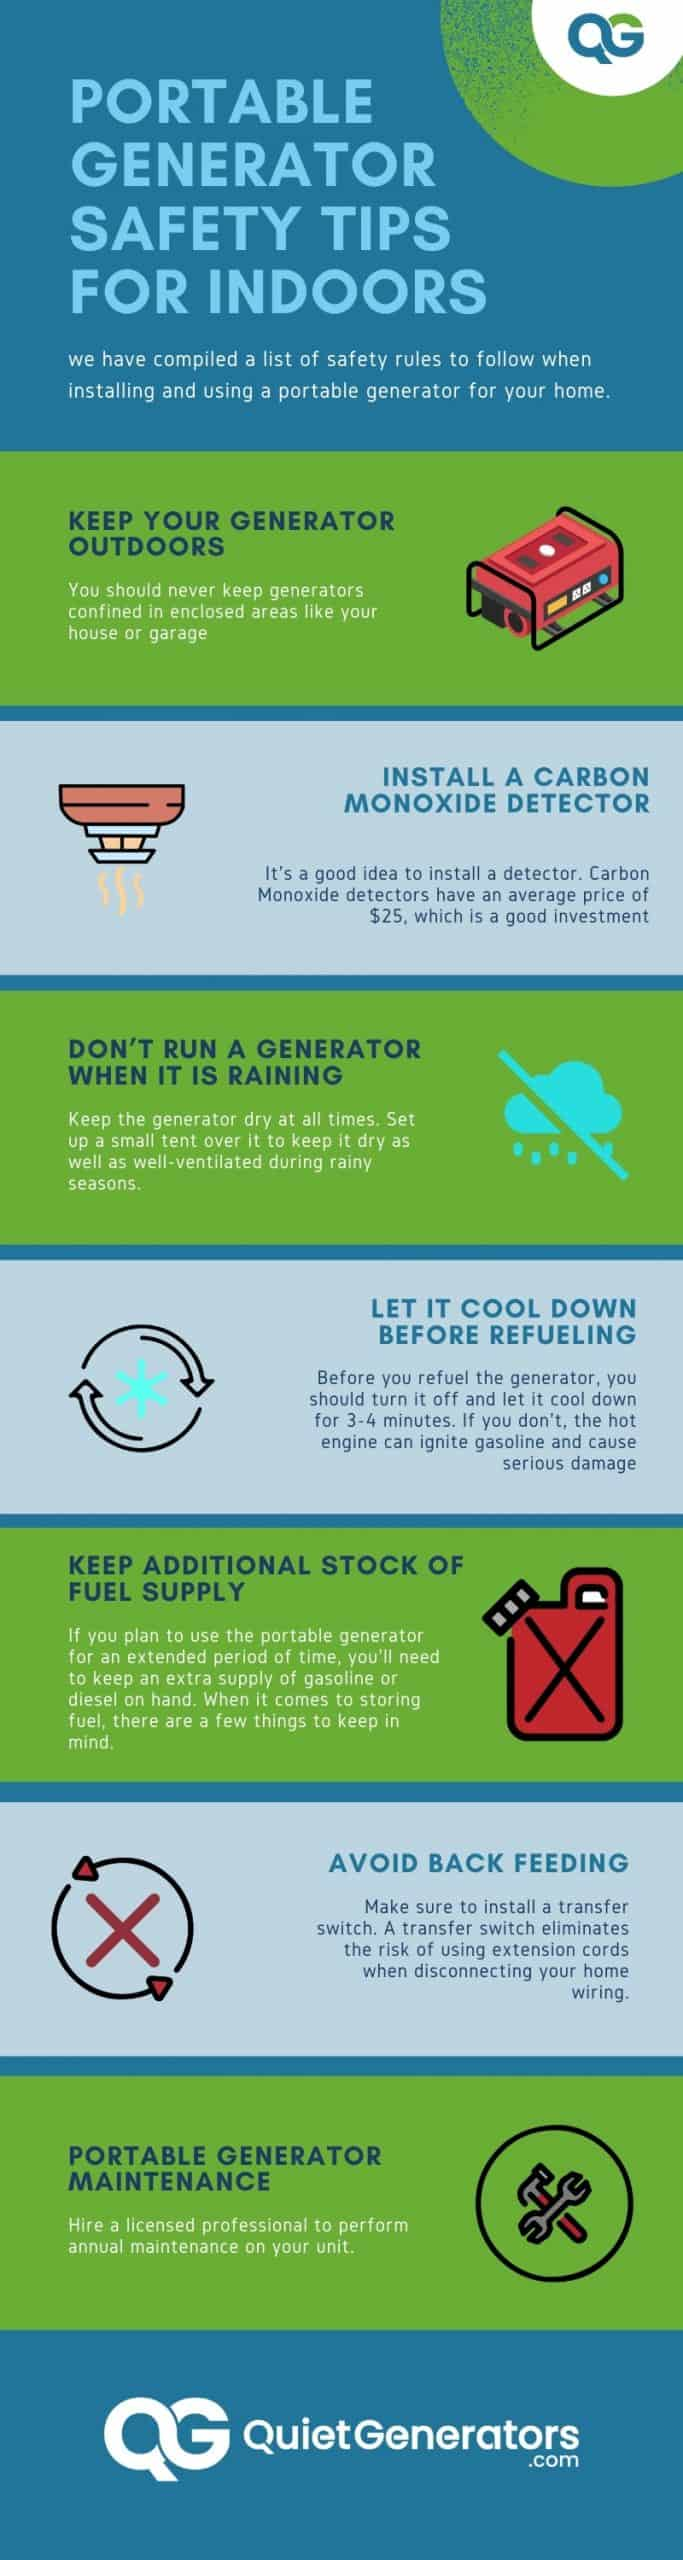 infographic on 7 points of advice on generators